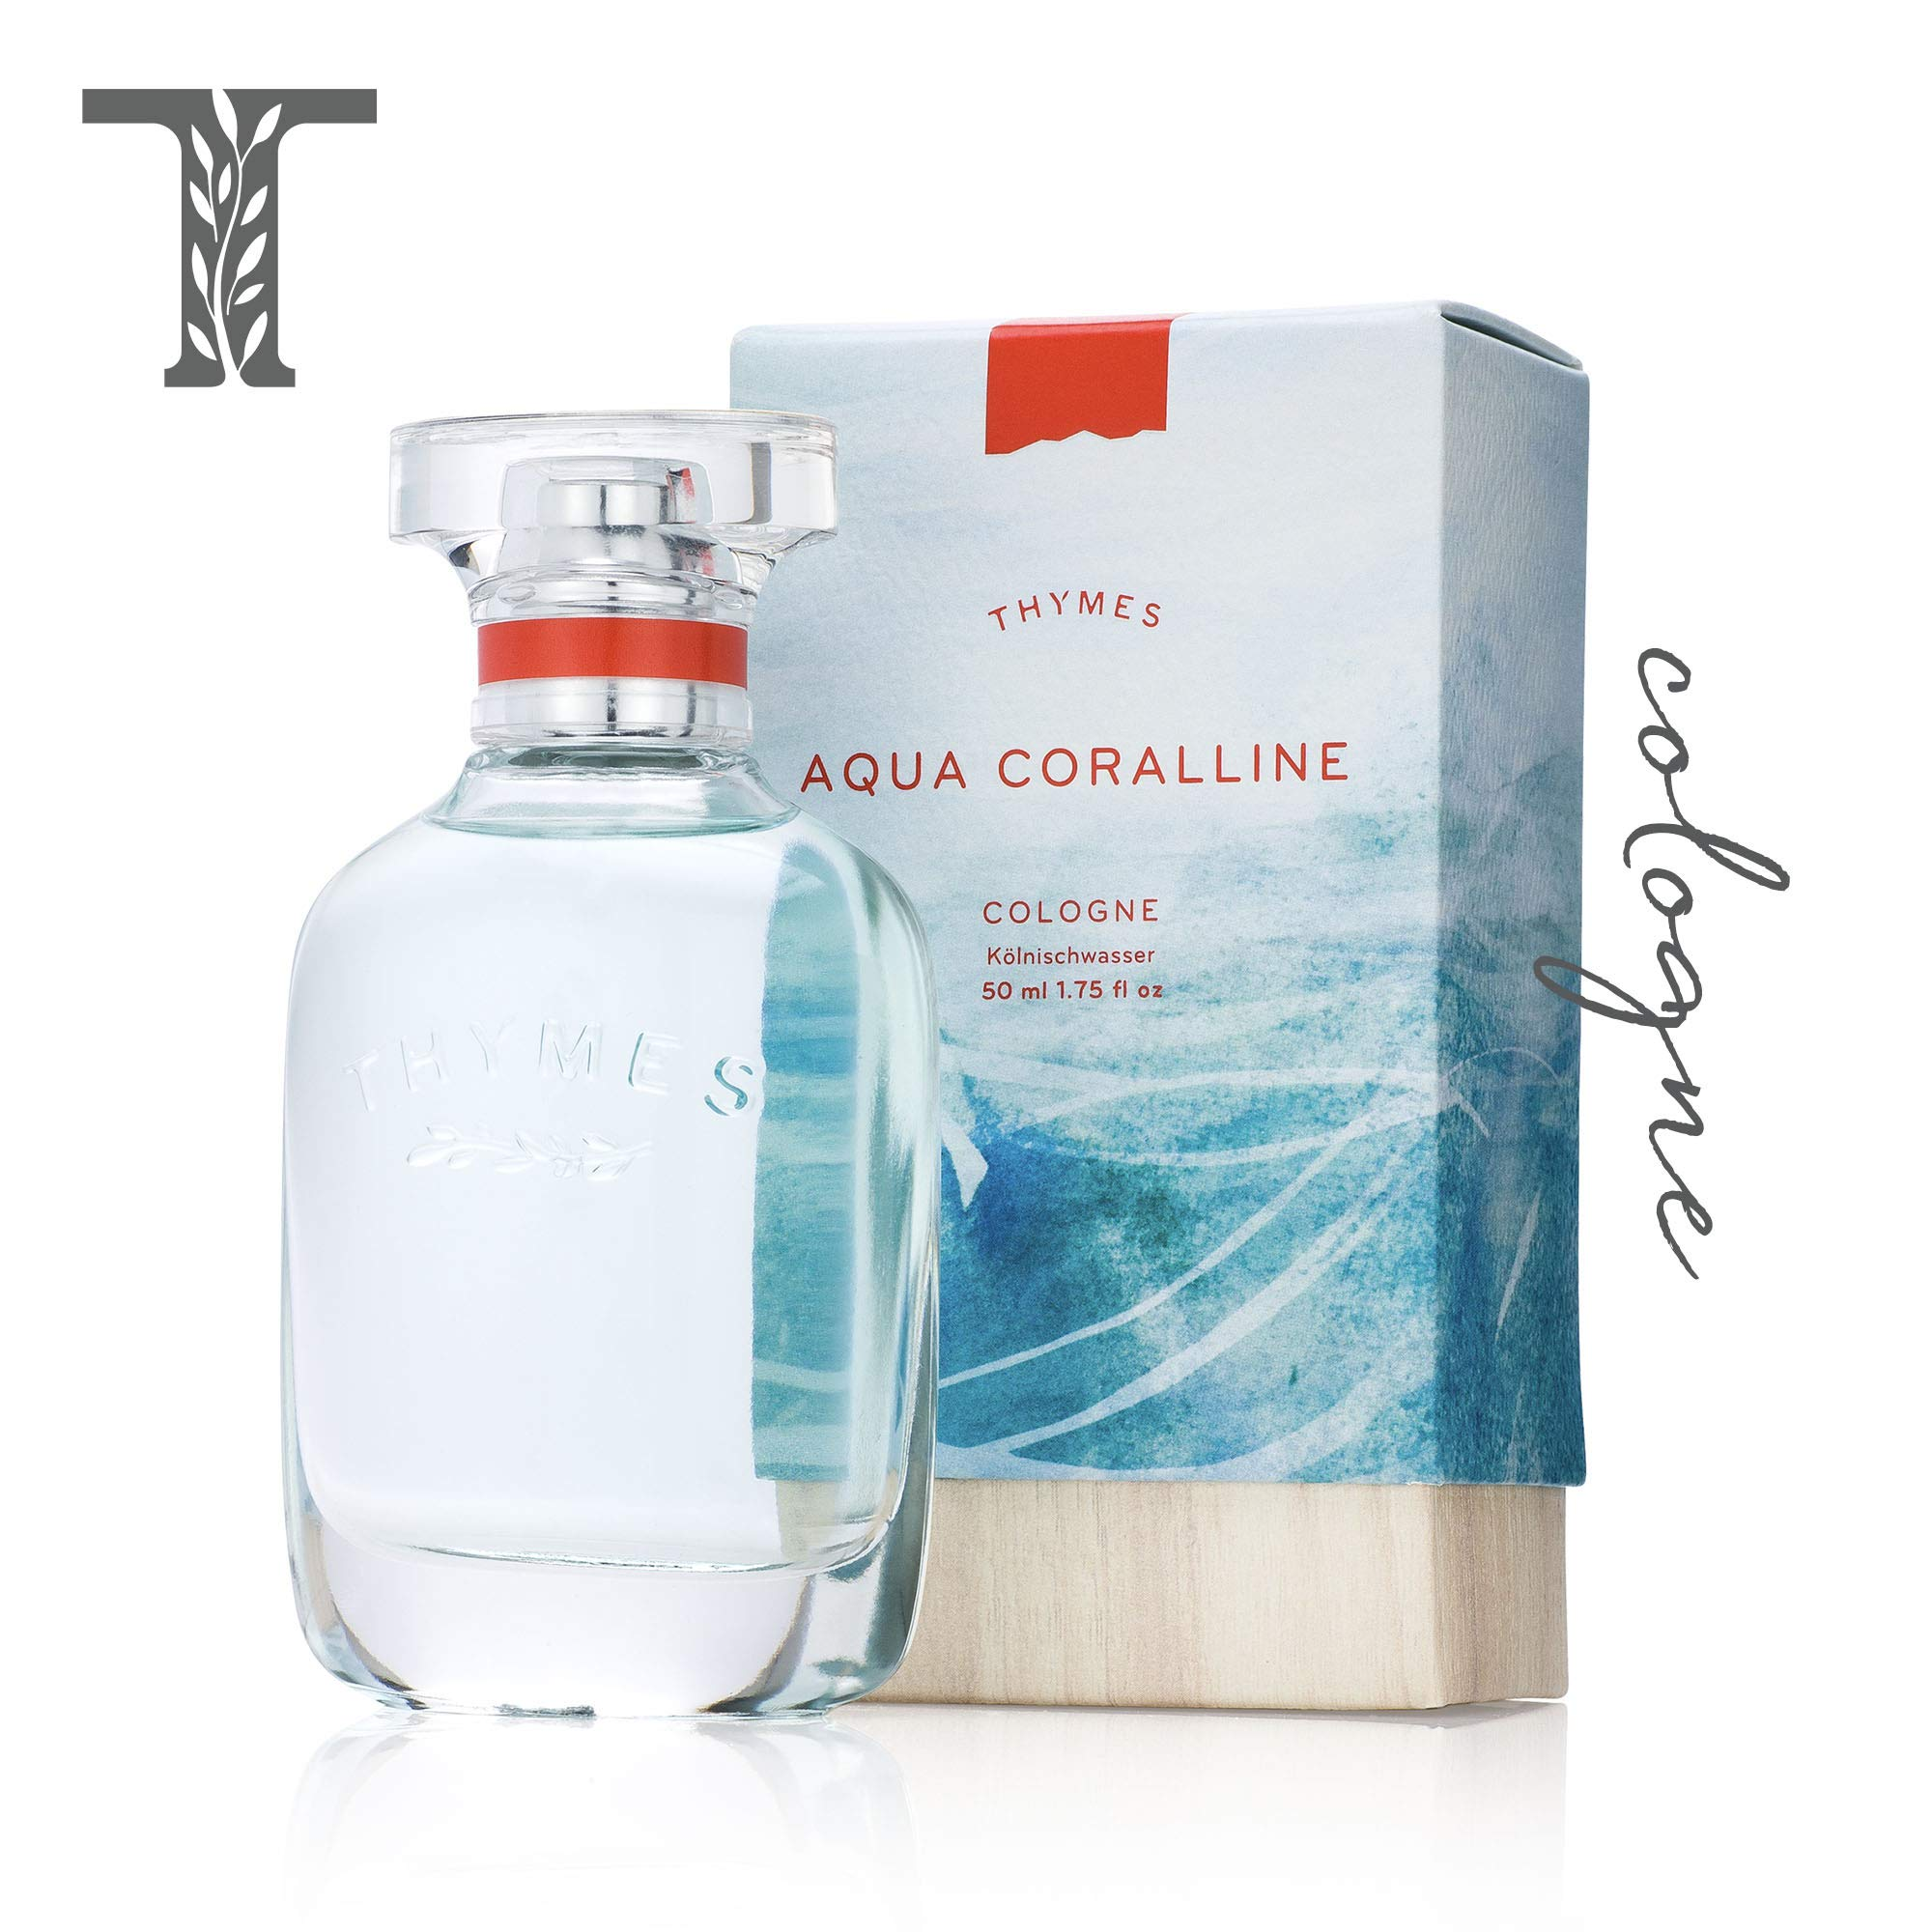 Thymes - Aqua Coralline Cologne - Refreshing Beach Fragrance for Men & Women - 1.75 oz by Thymes (Image #1)